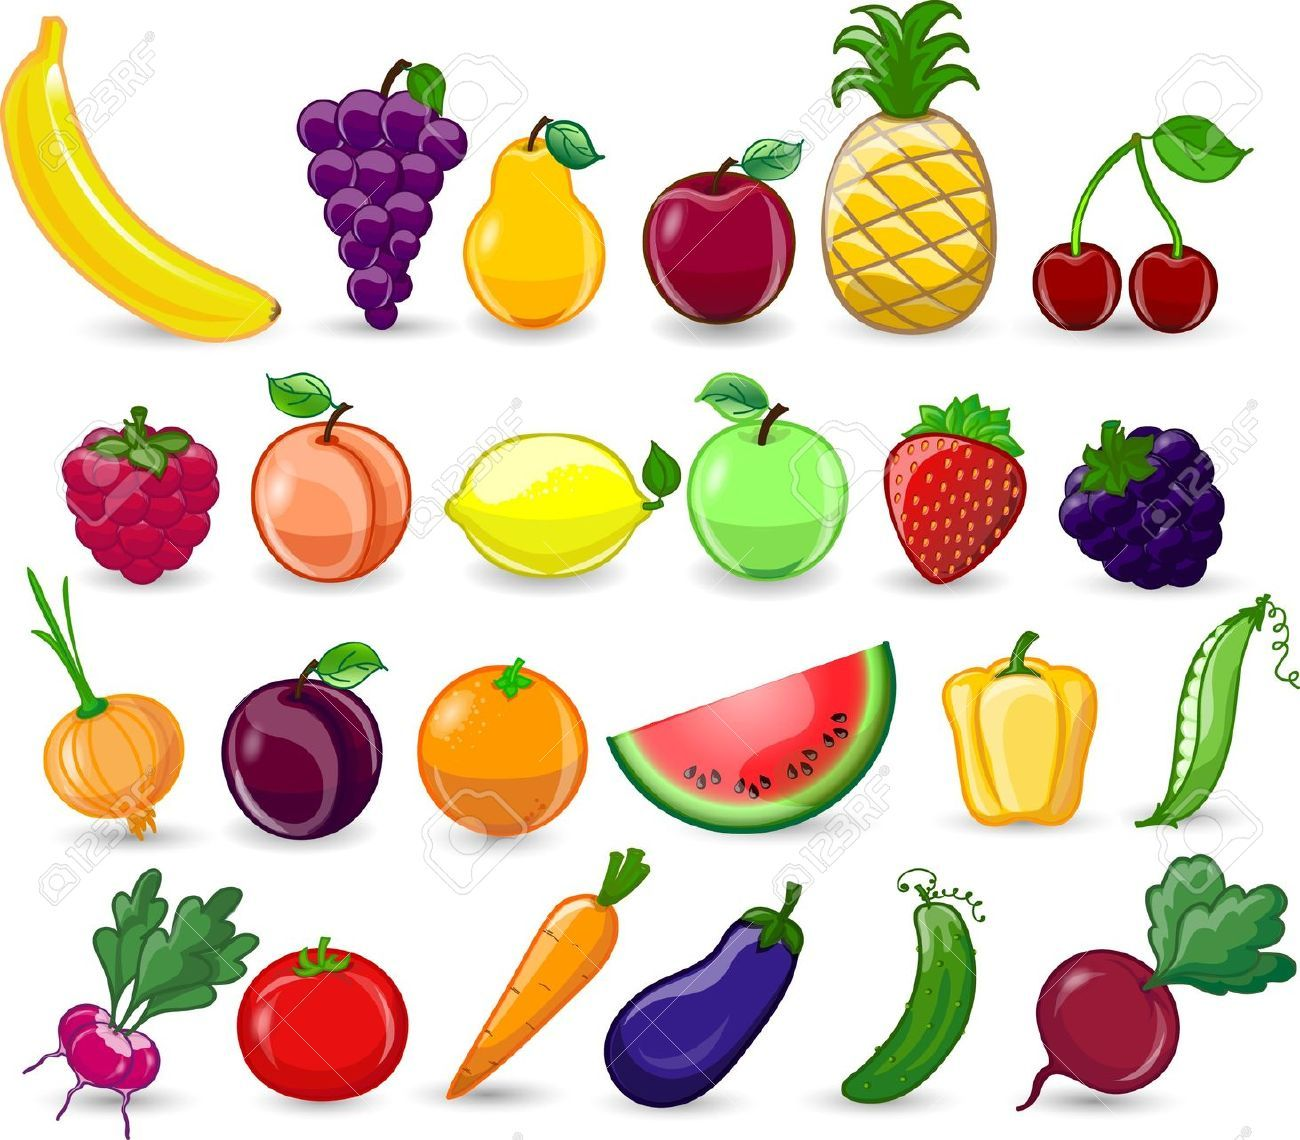 Stock Photo Ilustracao De Vegetais Fotos De Frutas Frutas